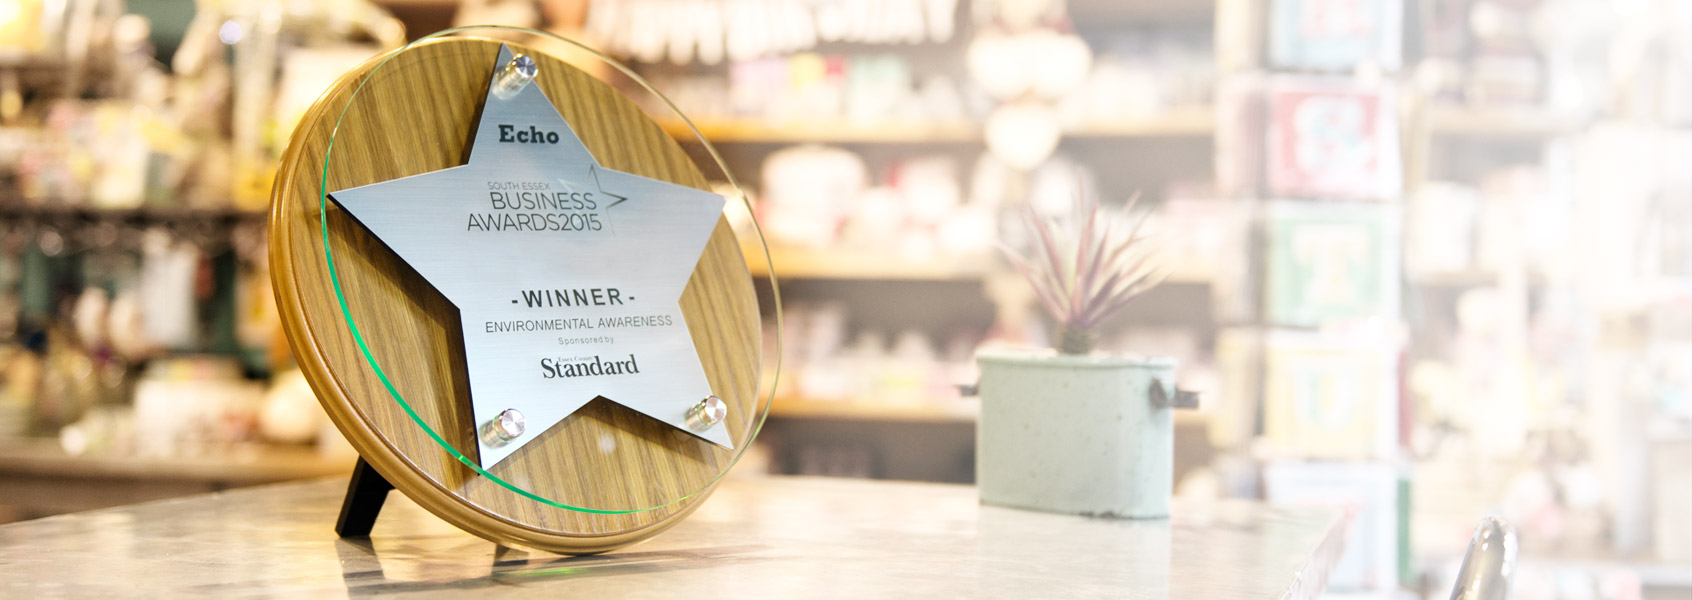 Free Standing Wooden Based Plaques wade from Oak - Business Star Awards